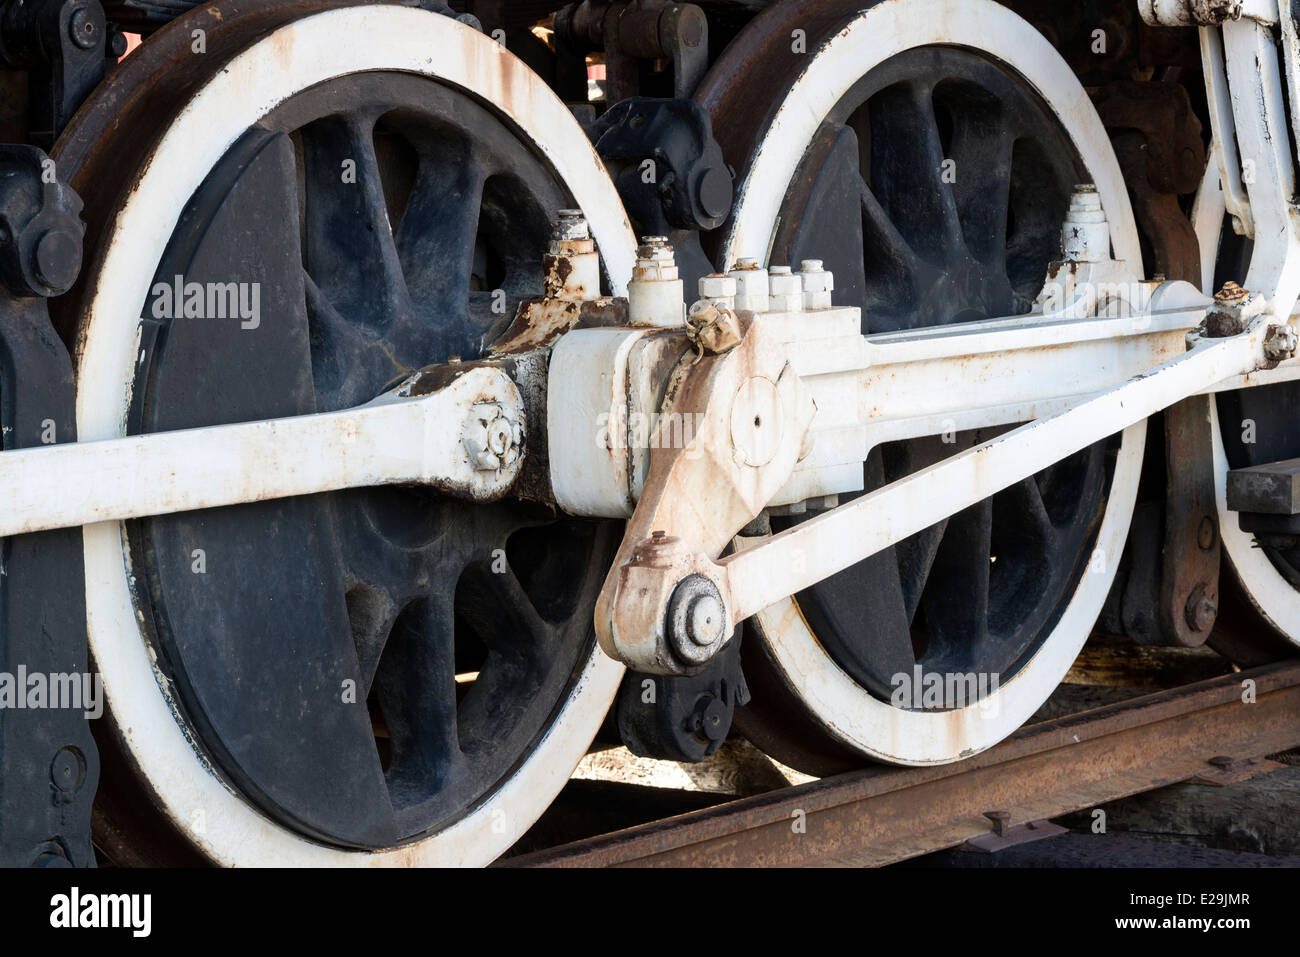 Drive train of a restored steam locomotive engine, Sumpter Valley Railroad, Eastern Oregon. - Stock Image